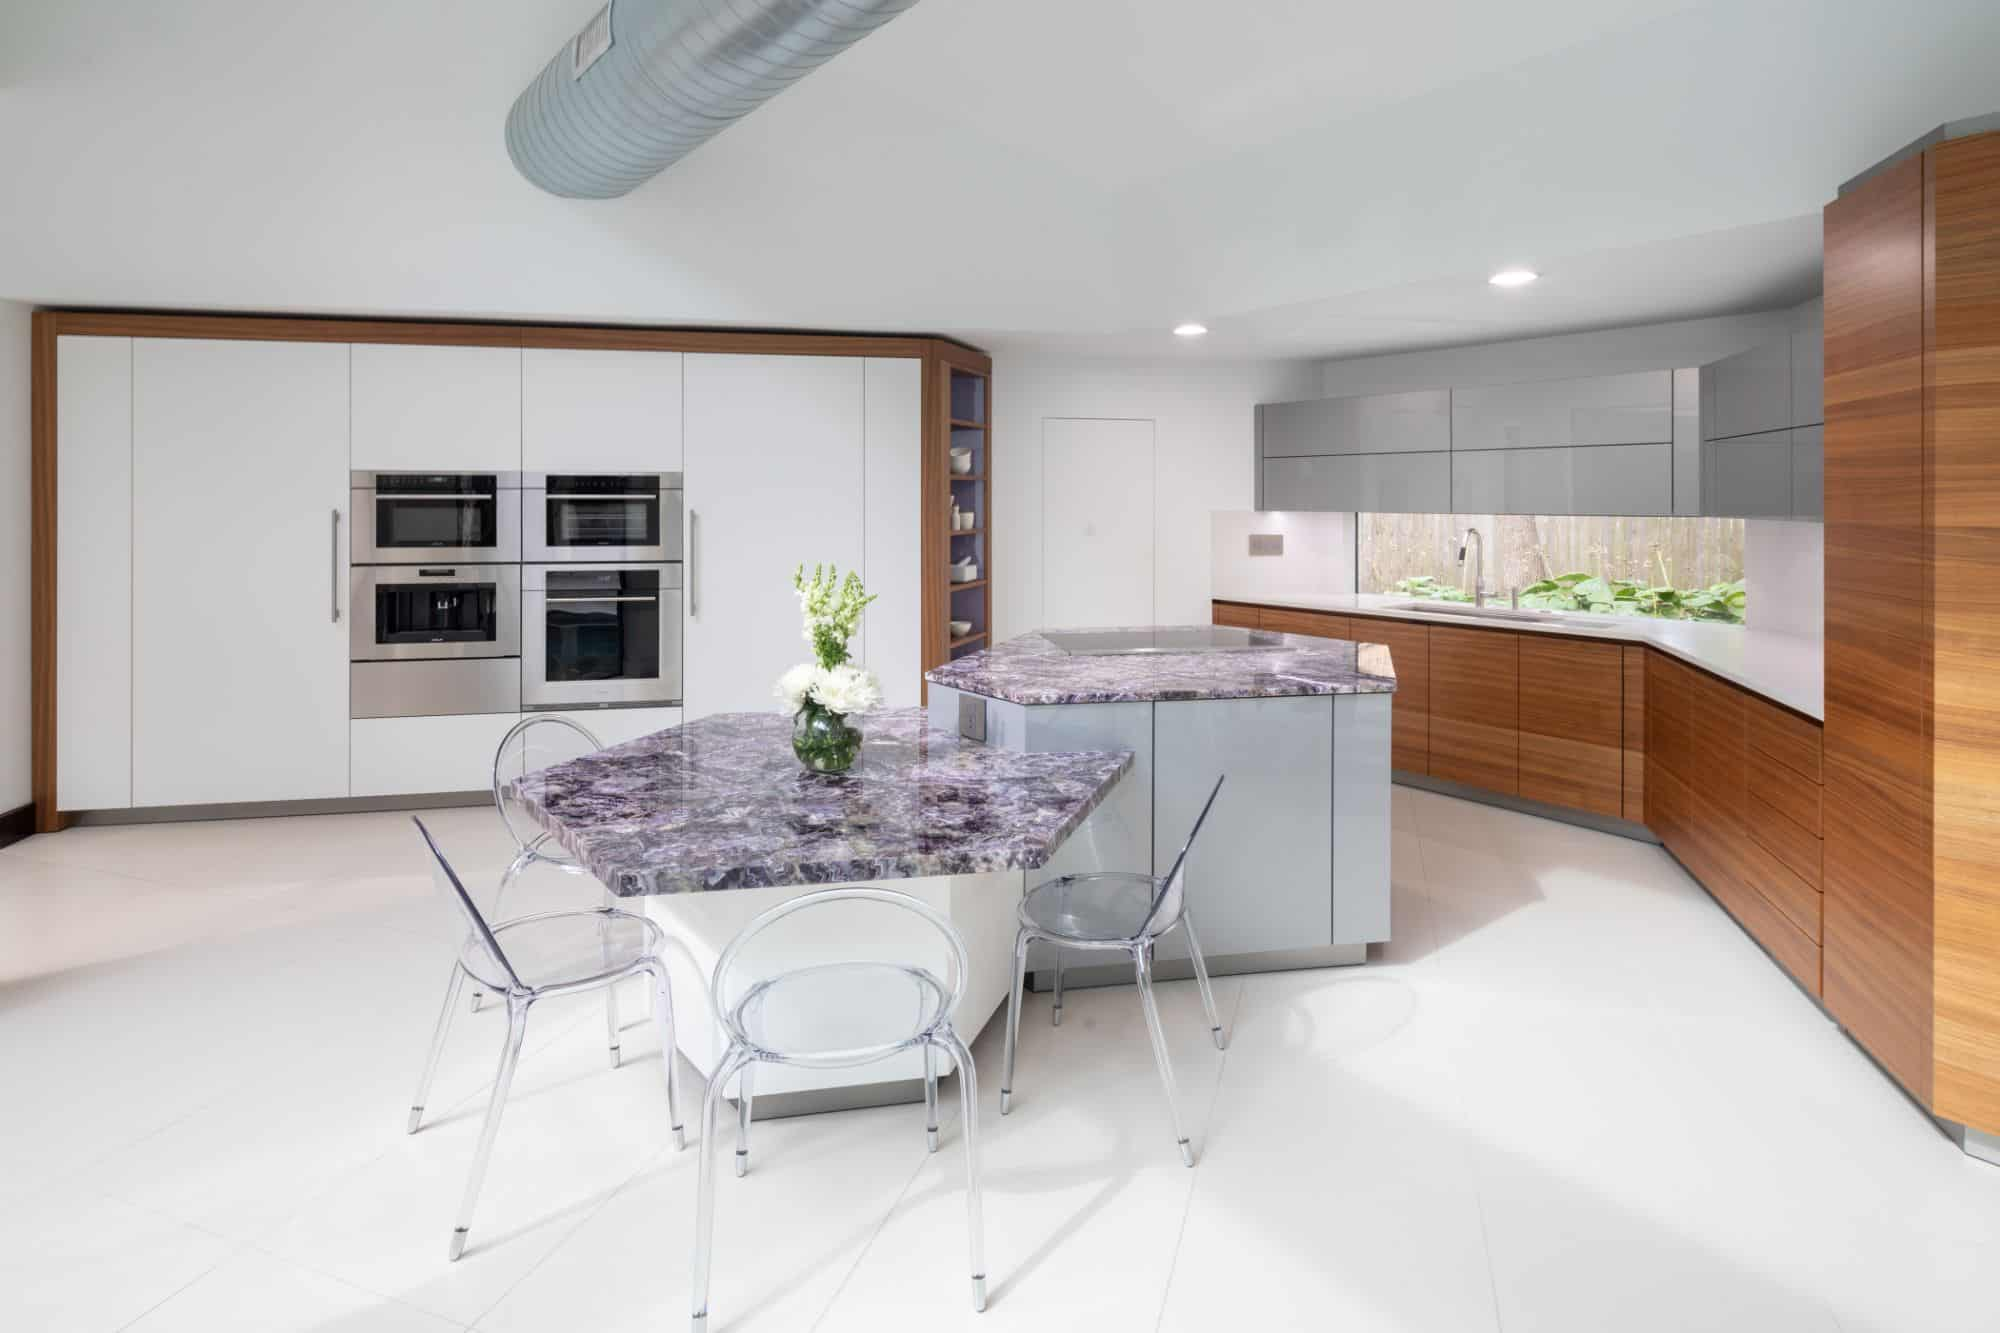 light bright with lots of contrasting textures in this ultramodern kitchen by eggersmann